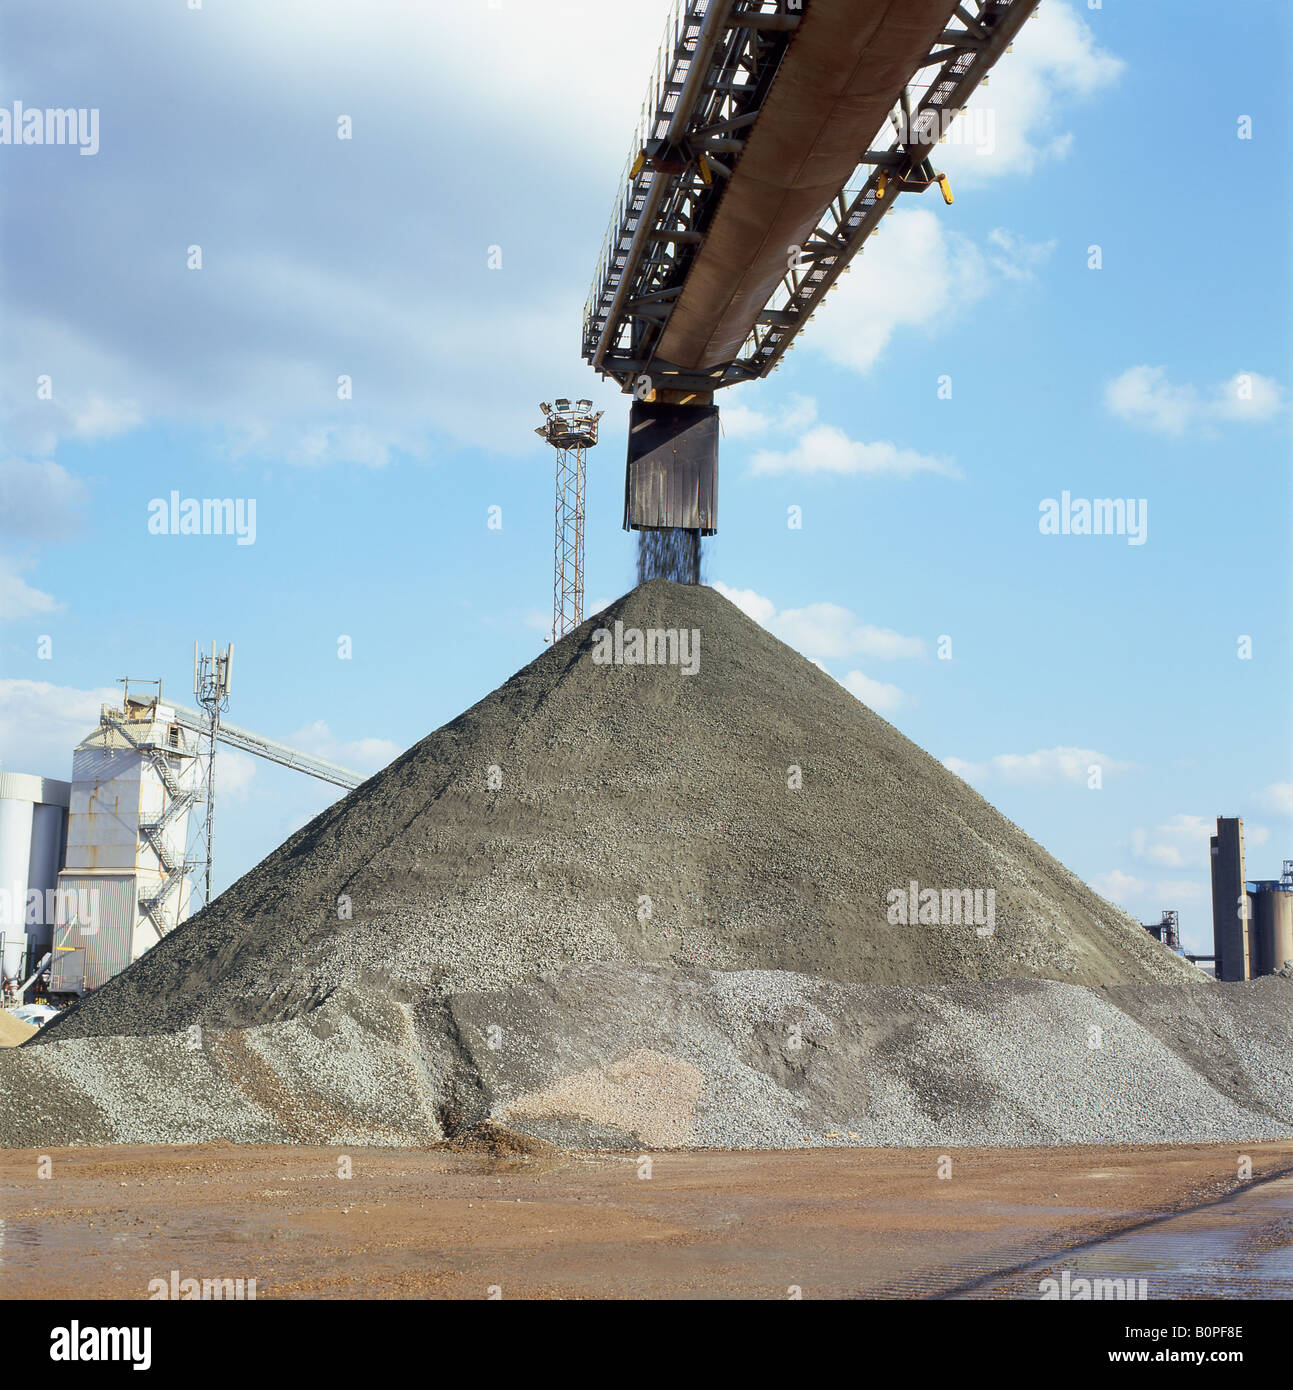 Pile of stones or duff being unloaded from a ship at Greenwich Docks, London, England UK - Stock Image